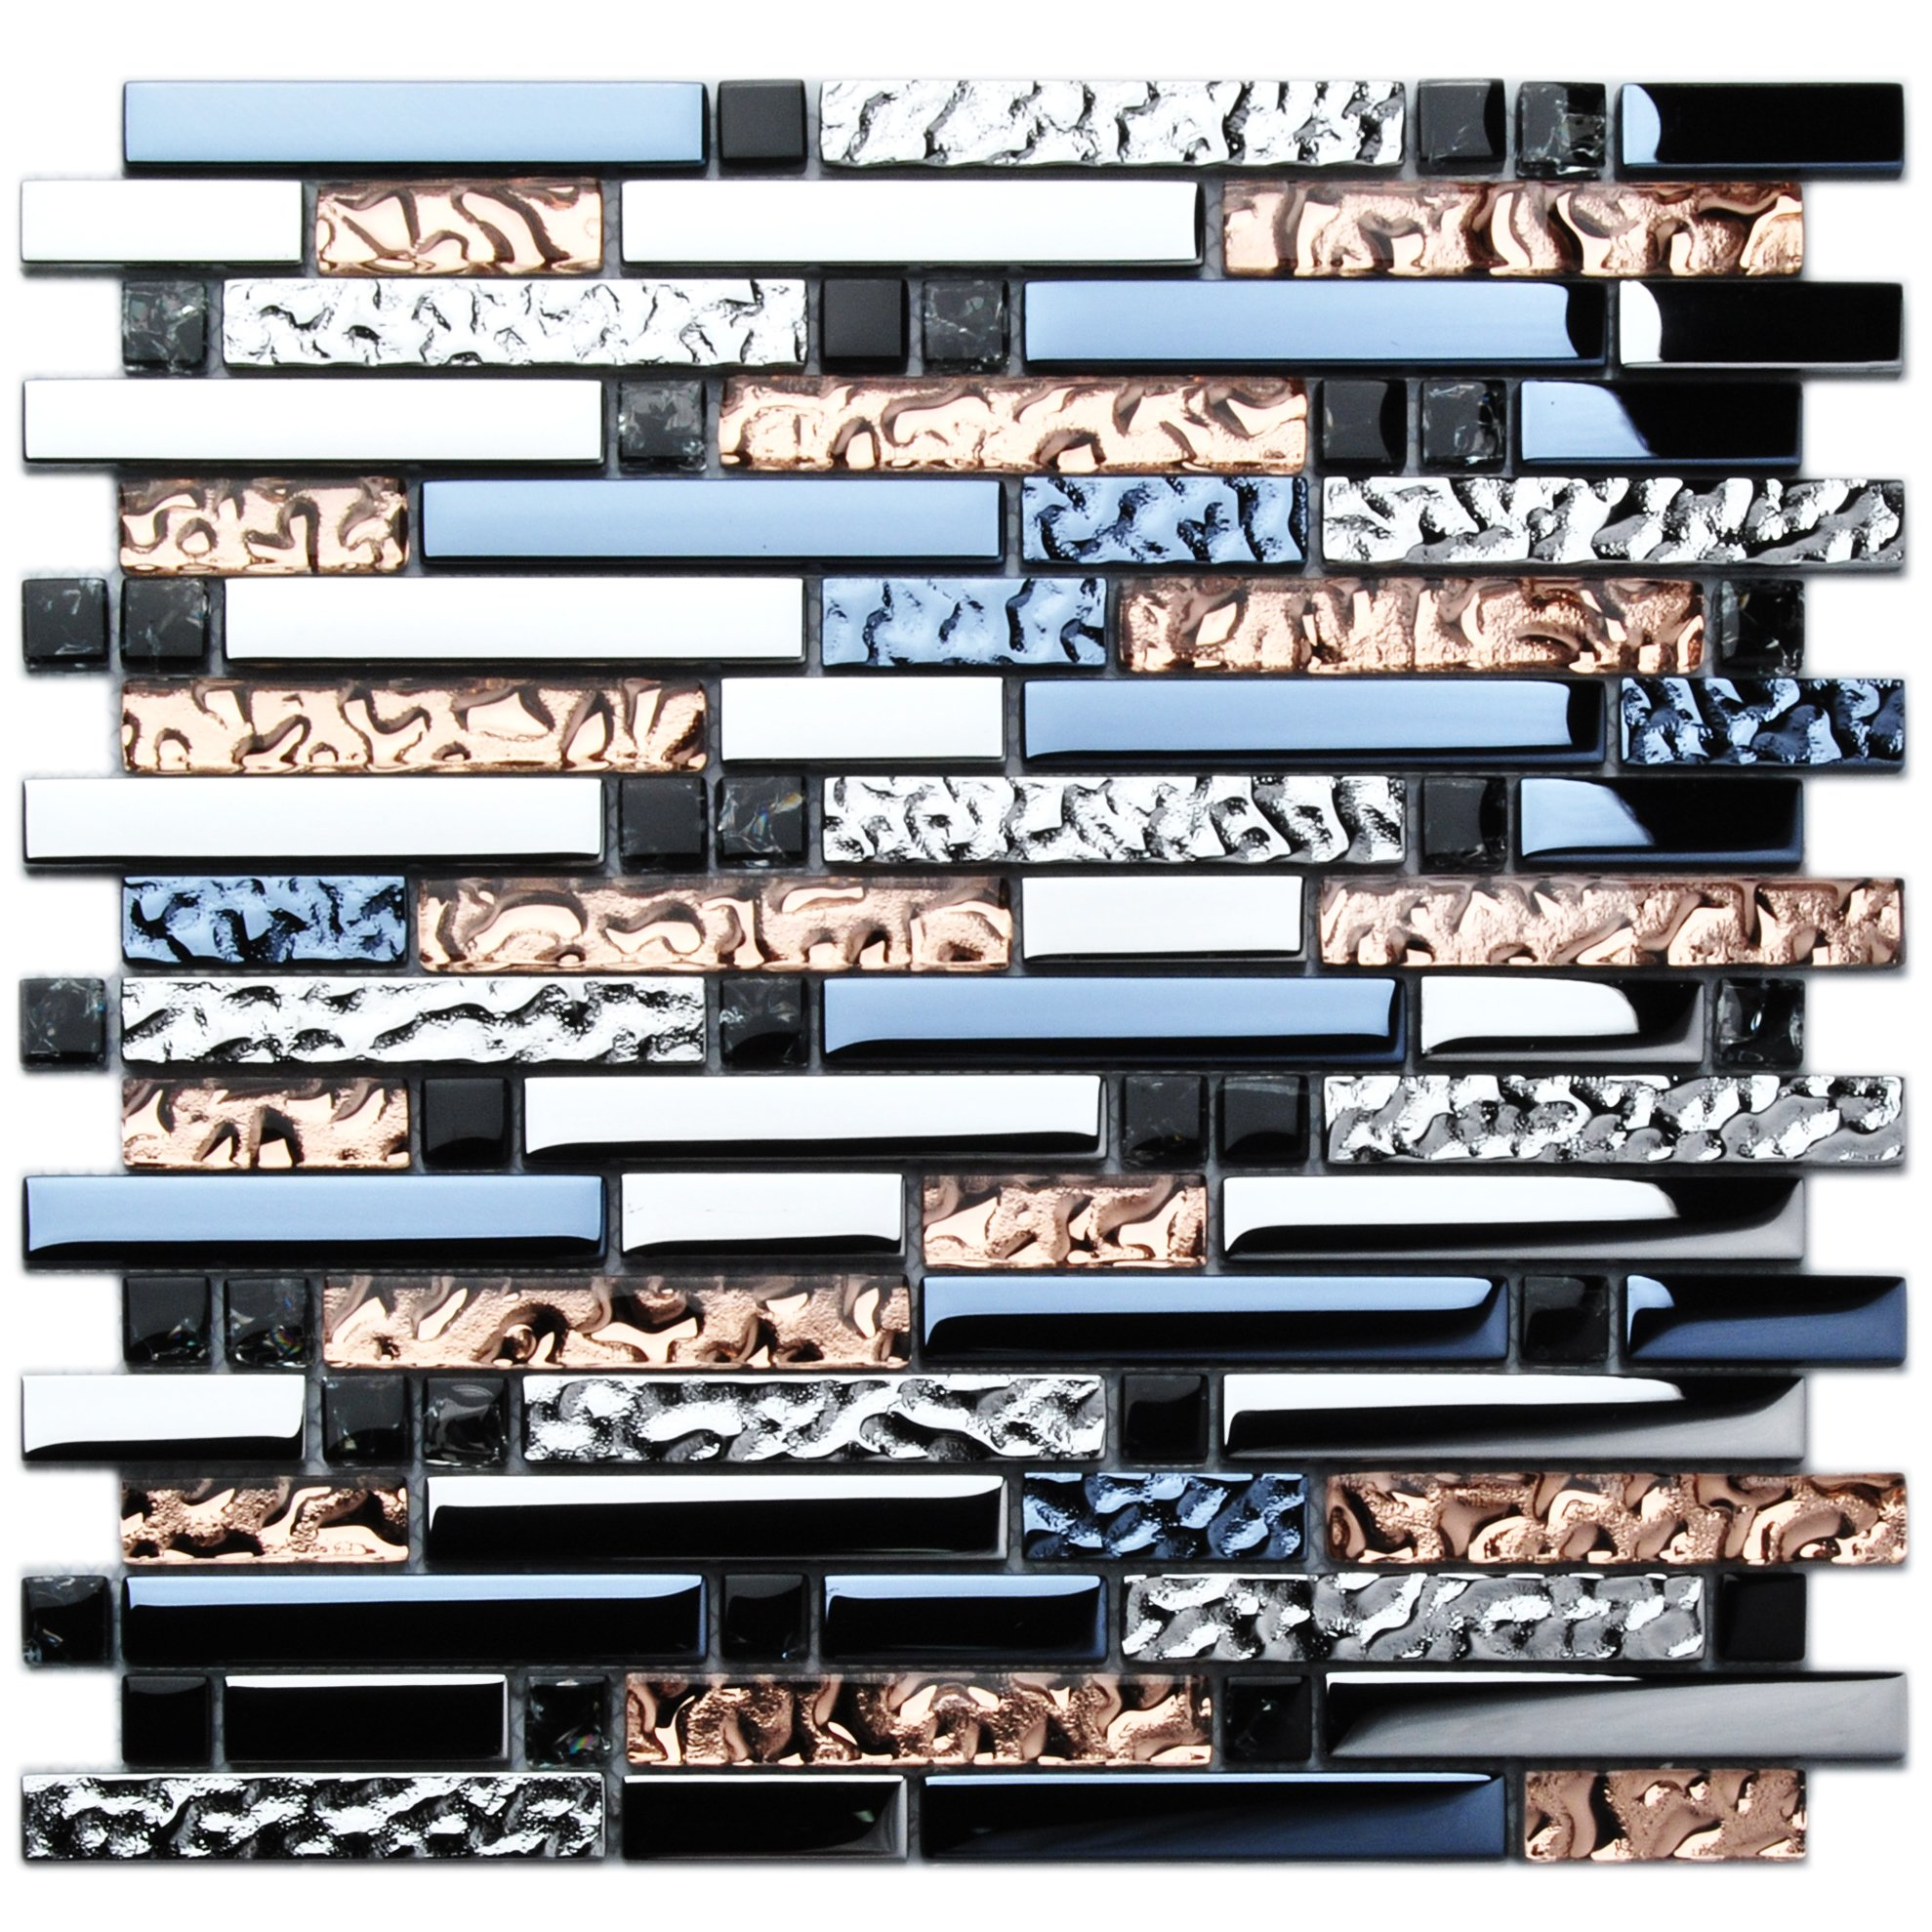 TST Mosaic Tiles Crystal Glass Tile Rose Gold Interlocking Chrome Silver Black Ink Blue Mosaic Bath Kitchen Fireplace Decor TSTGT107 (1 Sample 12x12 Inches) by BLUJELLYFISH